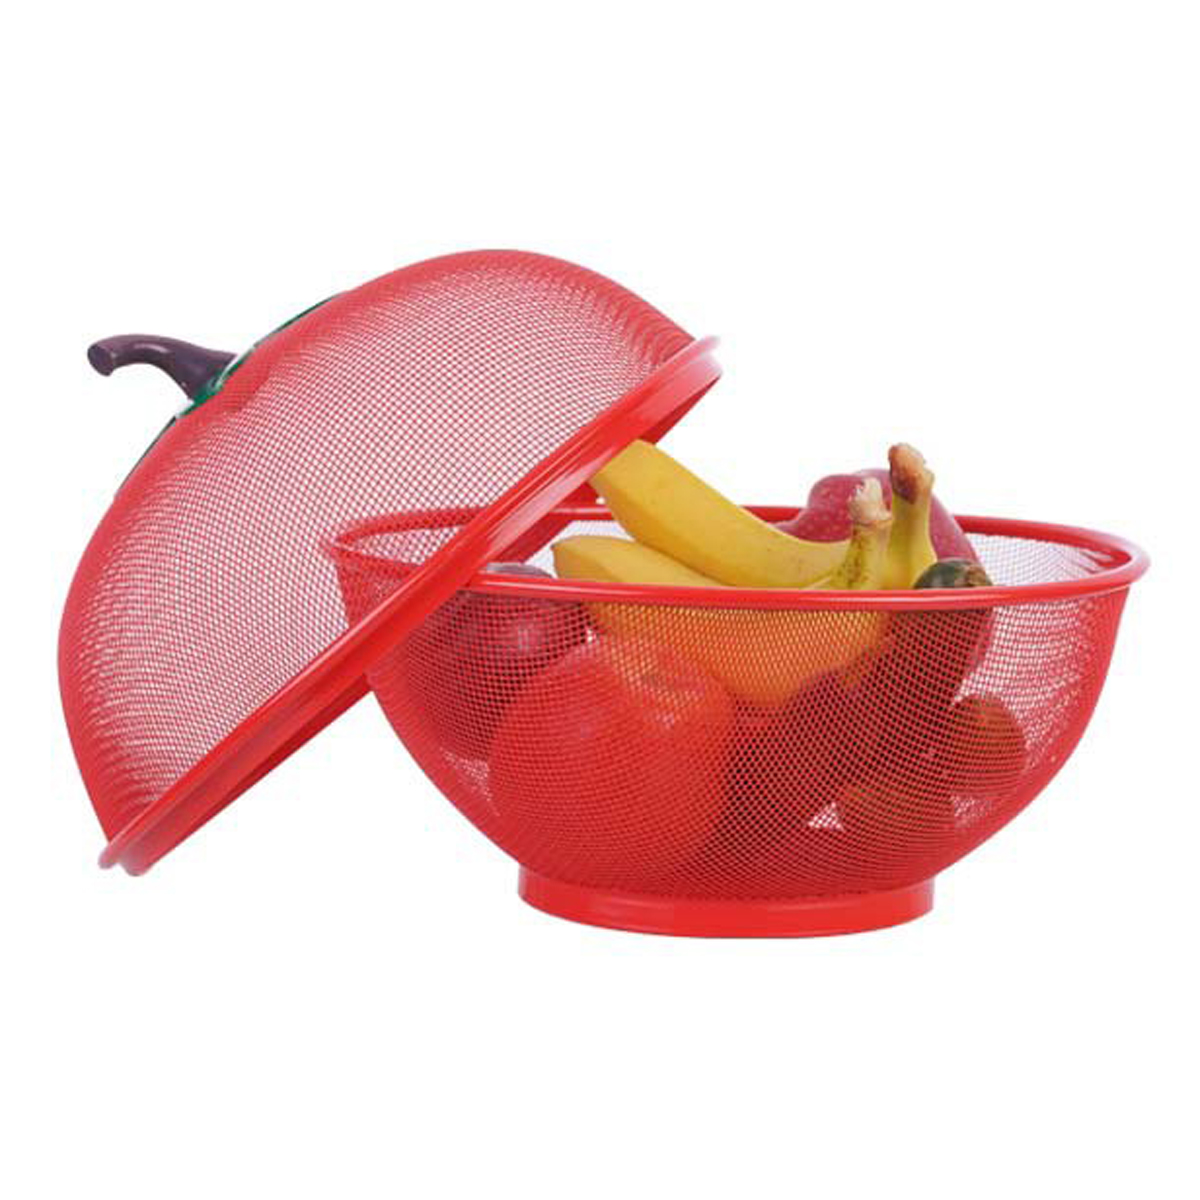 Apple Shape Mesh Fresh Fruits Storage Drain Basket Keep Flies Insects Out Storage Baskets Washing Vegetable Basket Filter Tools